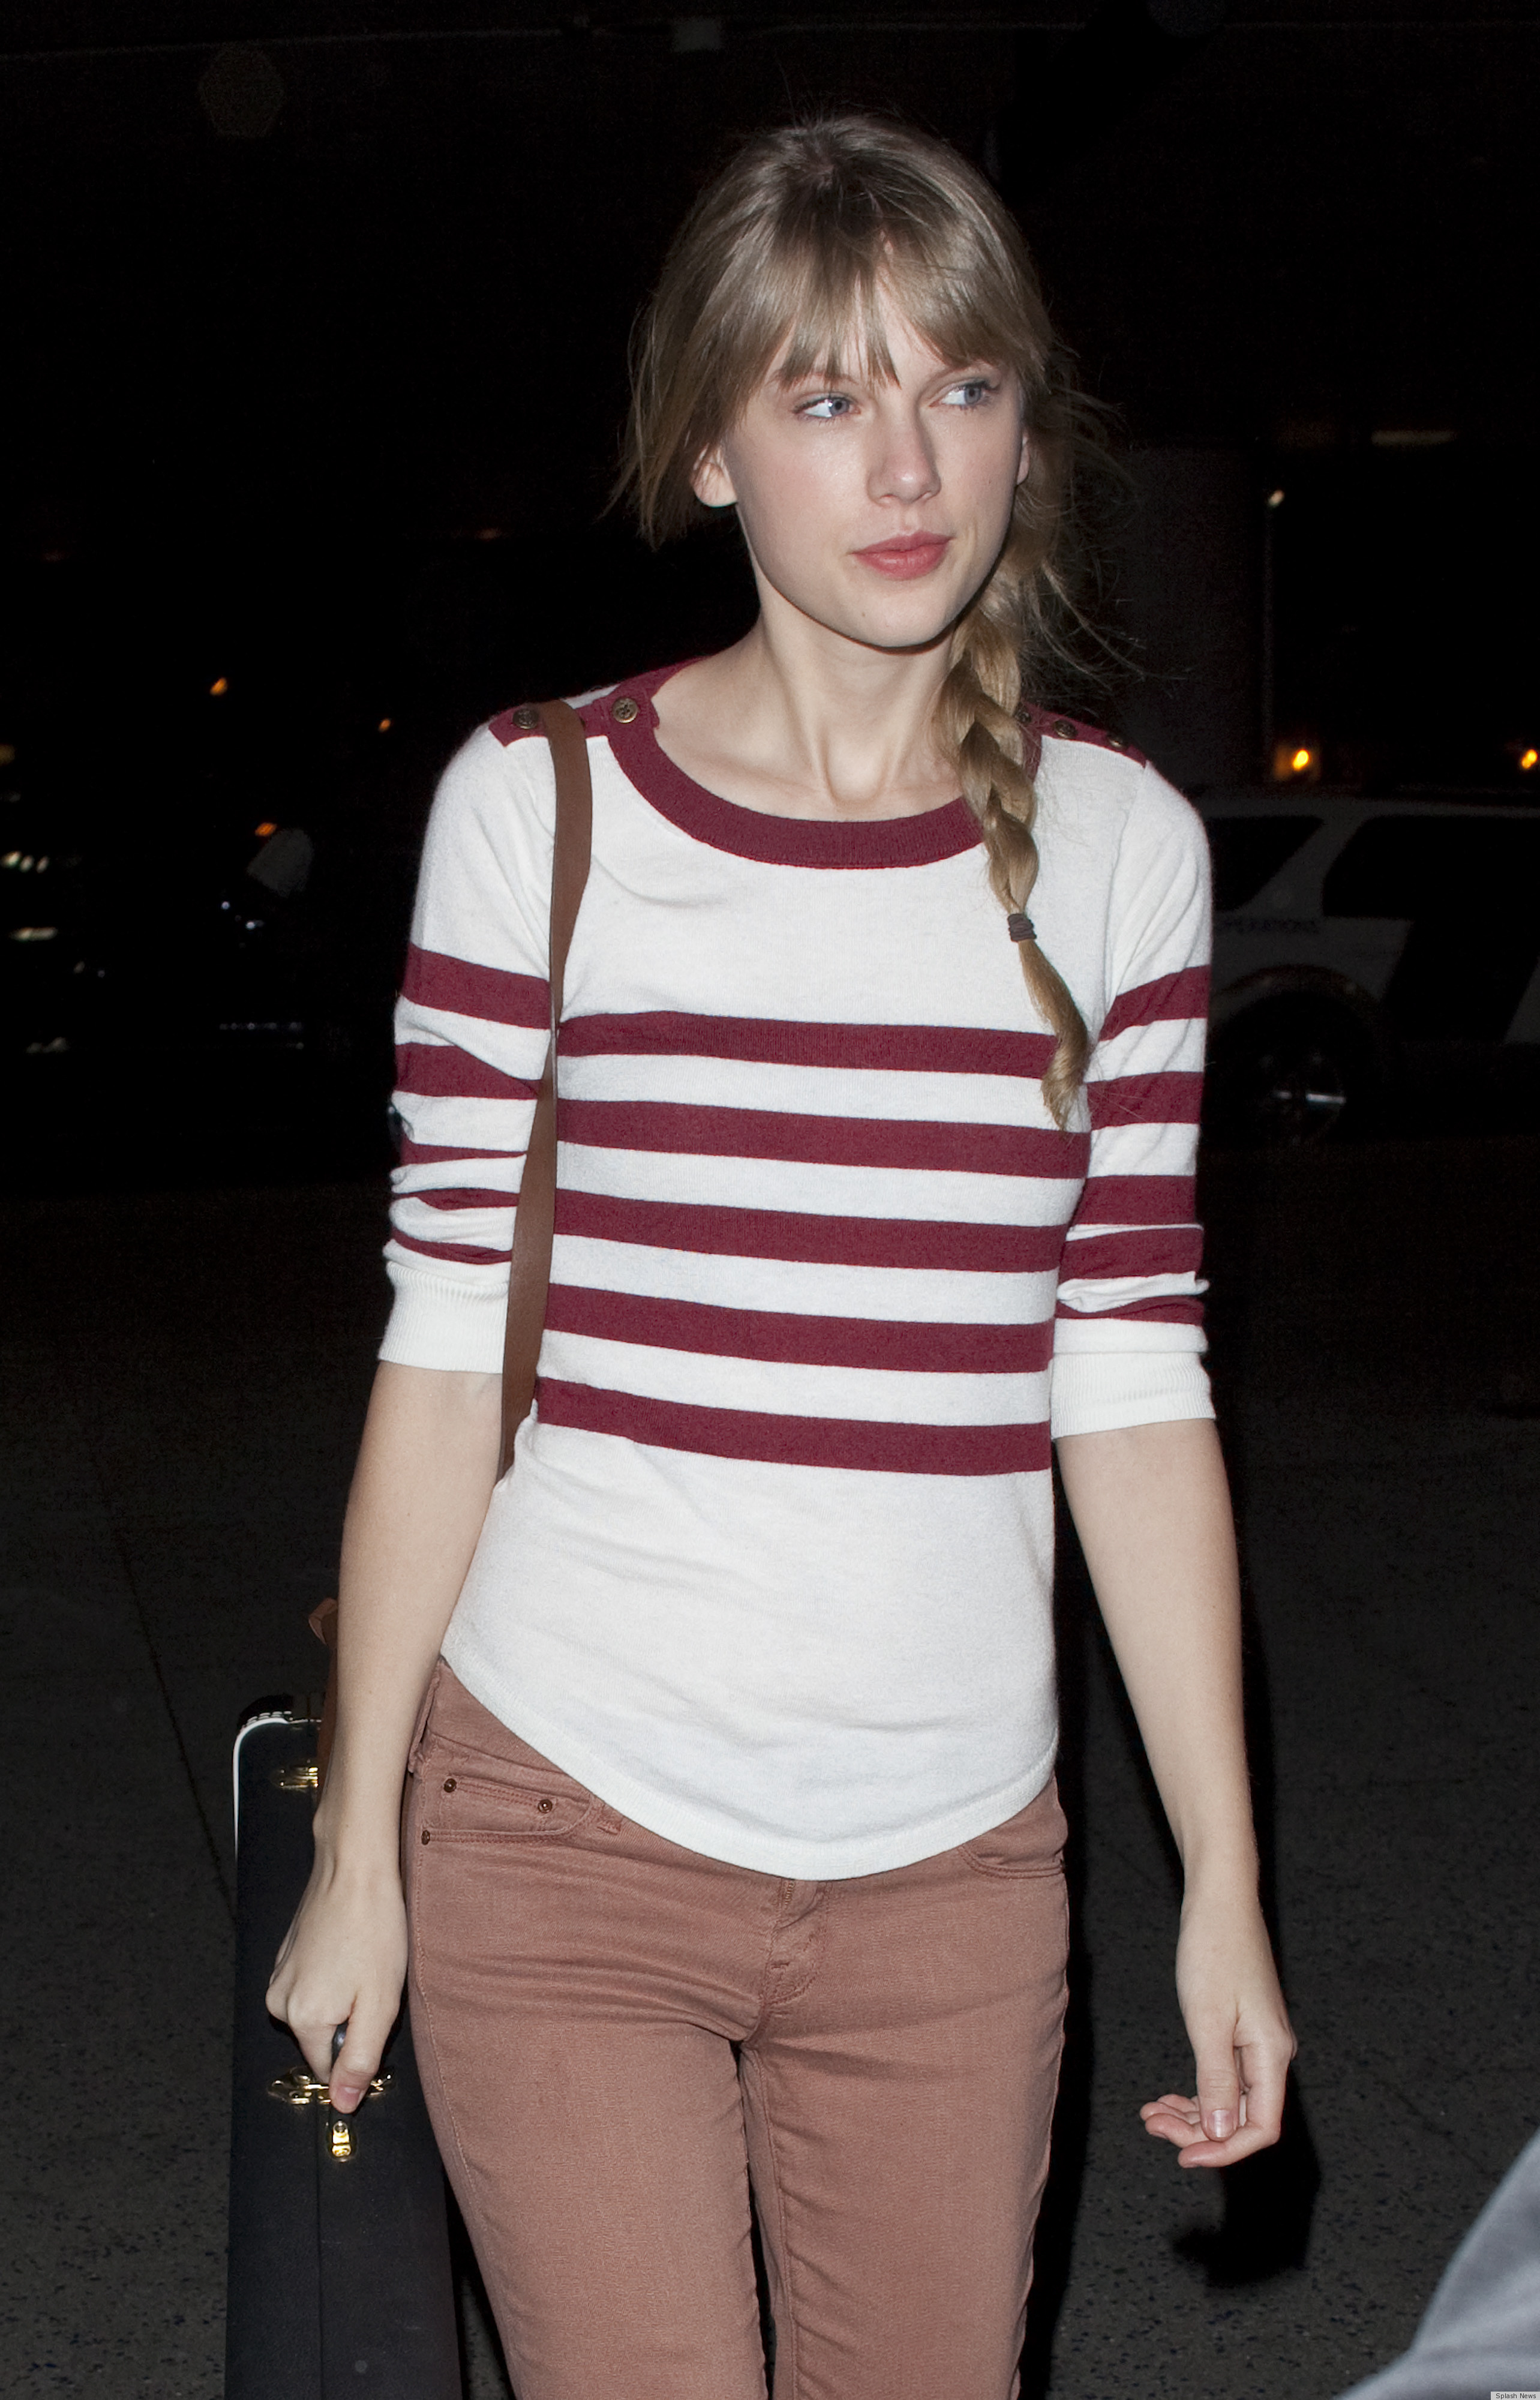 Tow N Go >> Taylor Swift No Makeup At LAX Airport (PHOTOS) | HuffPost